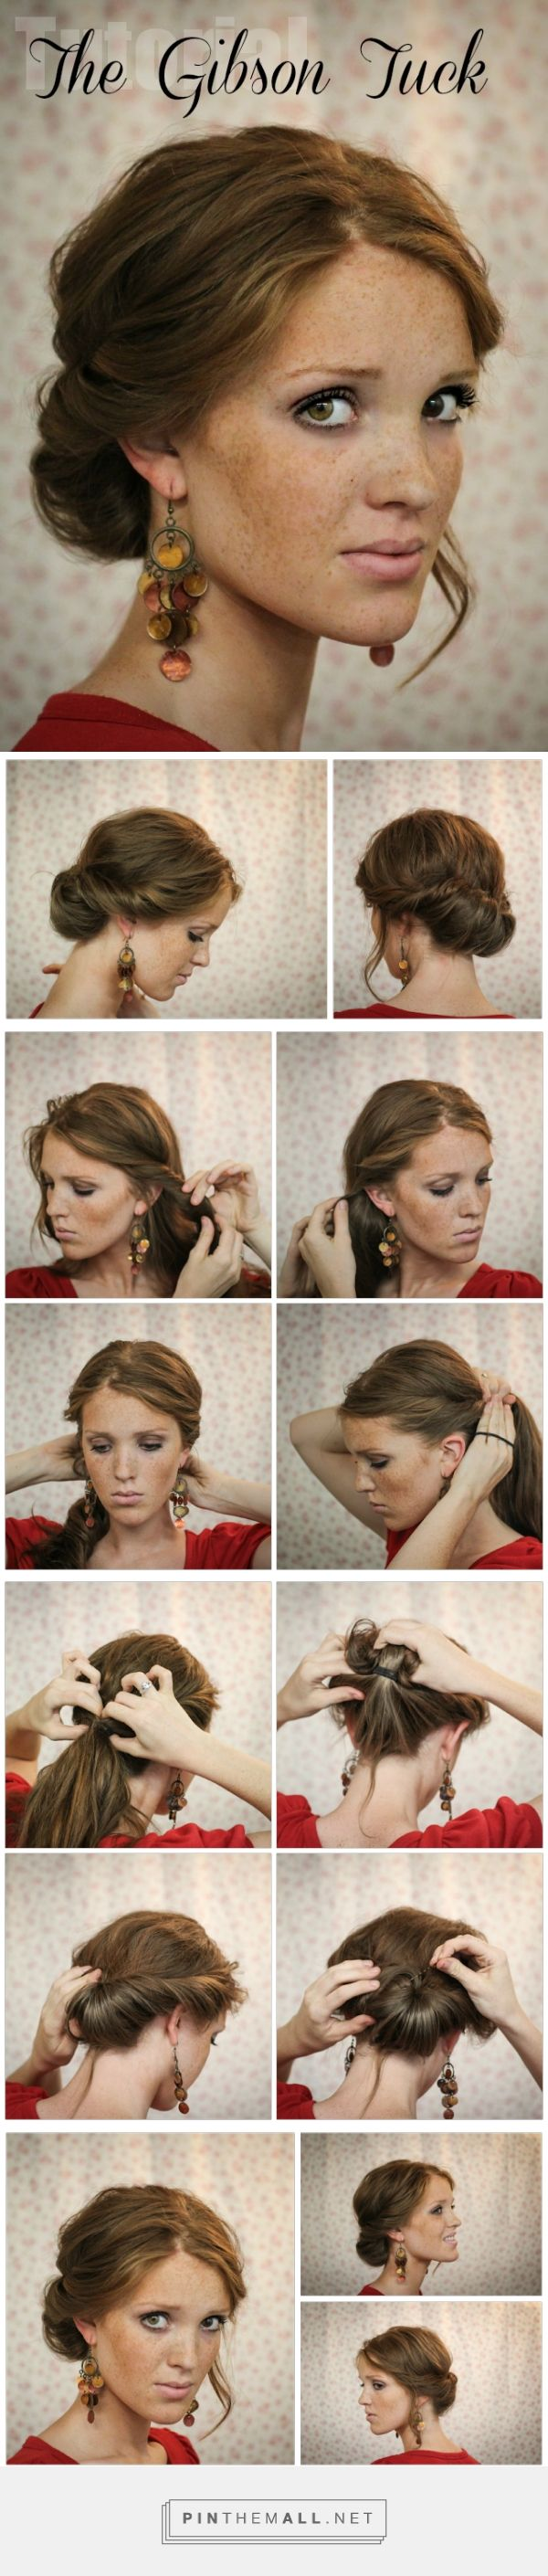 Change Your Hairstyle Online Women | Foxes, Tutorials and Hair style